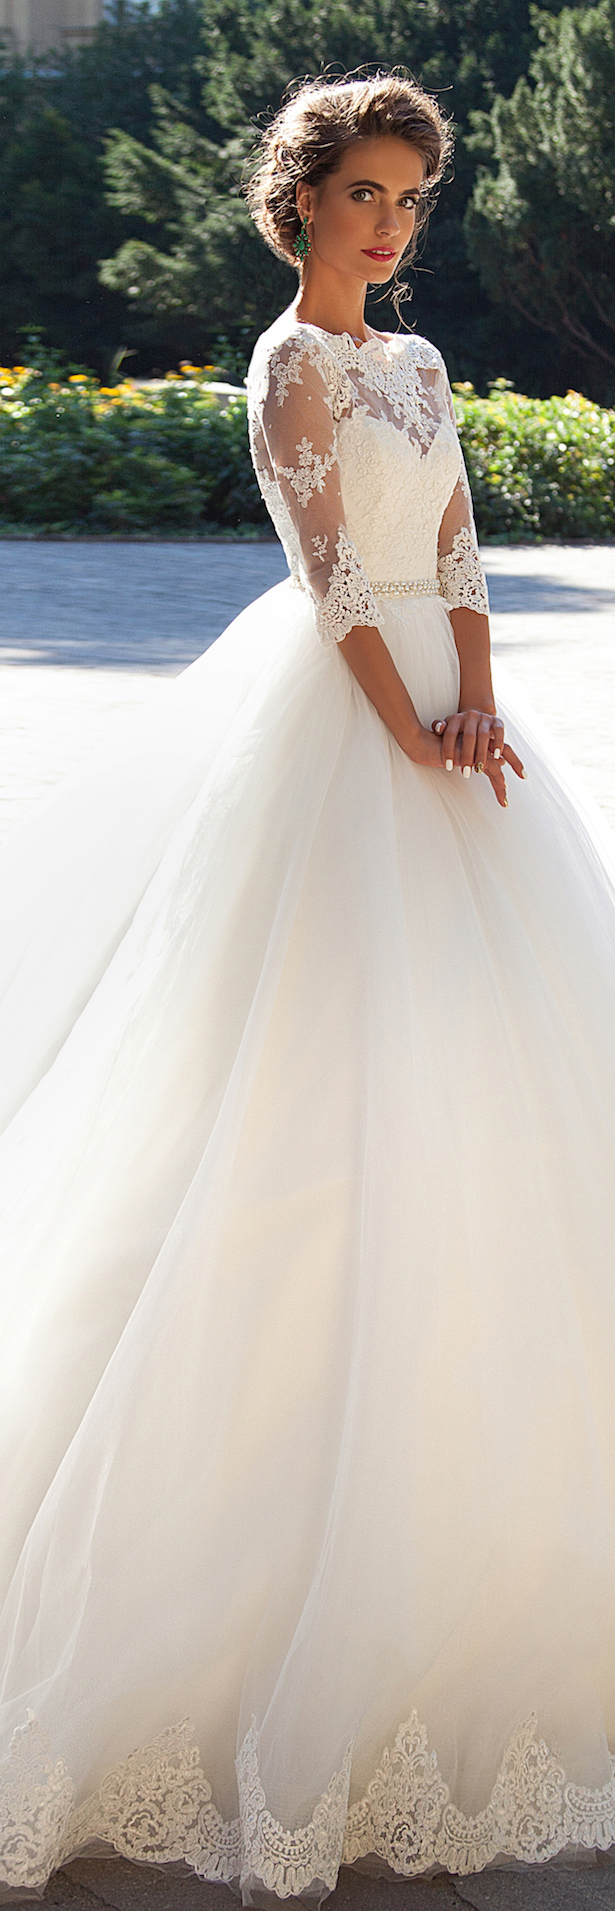 Wedding Dress Up Ideas : Milla nova bridal collection belle the magazine